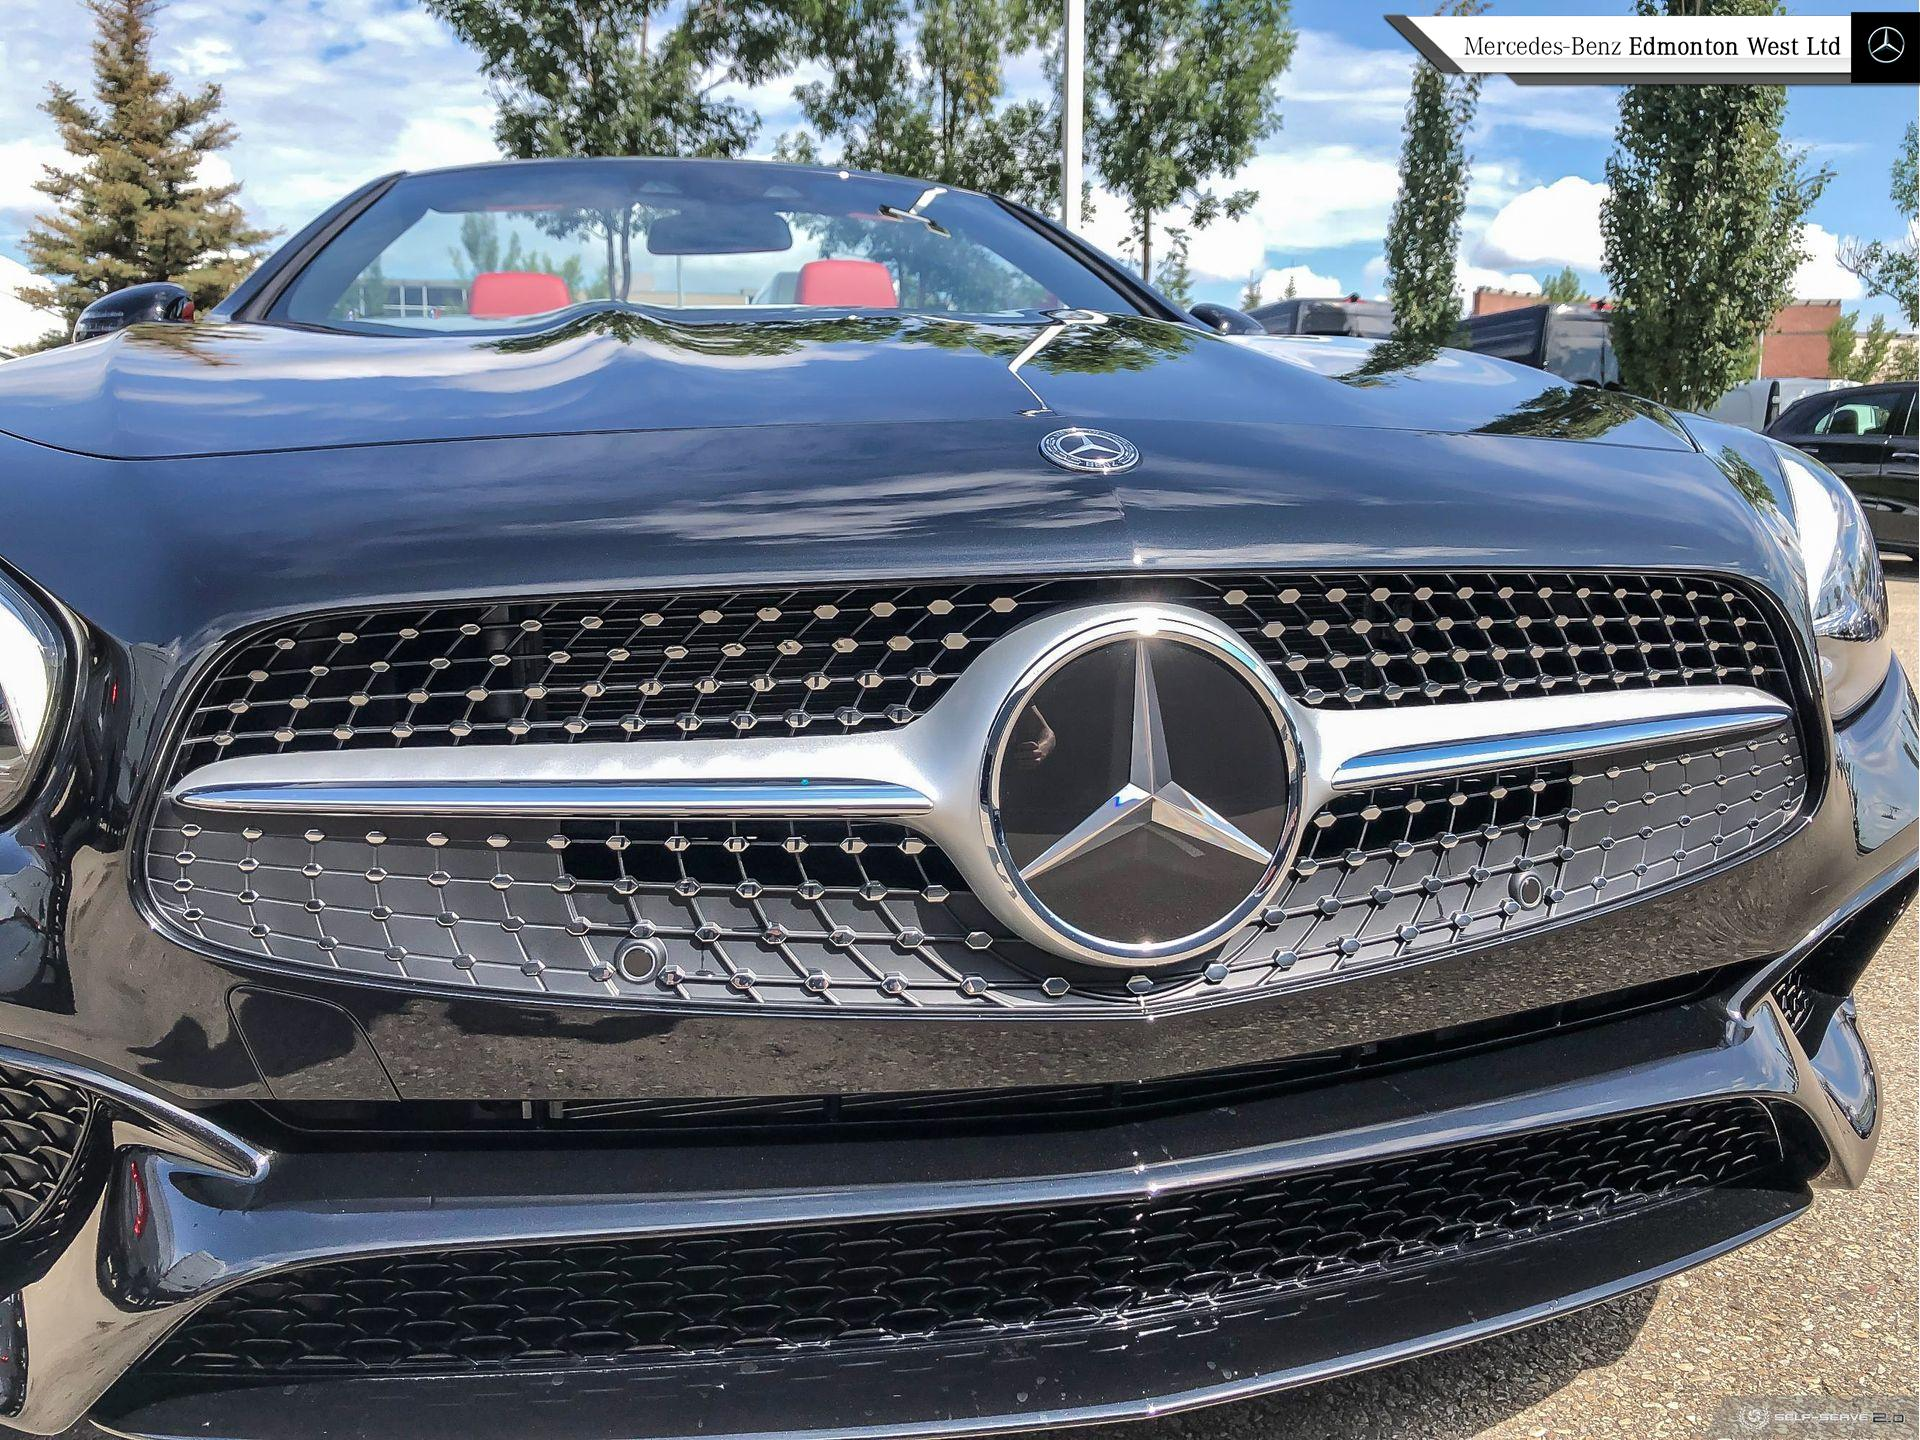 New 2020 Mercedes Benz SL 450 Roadster - Premium Package